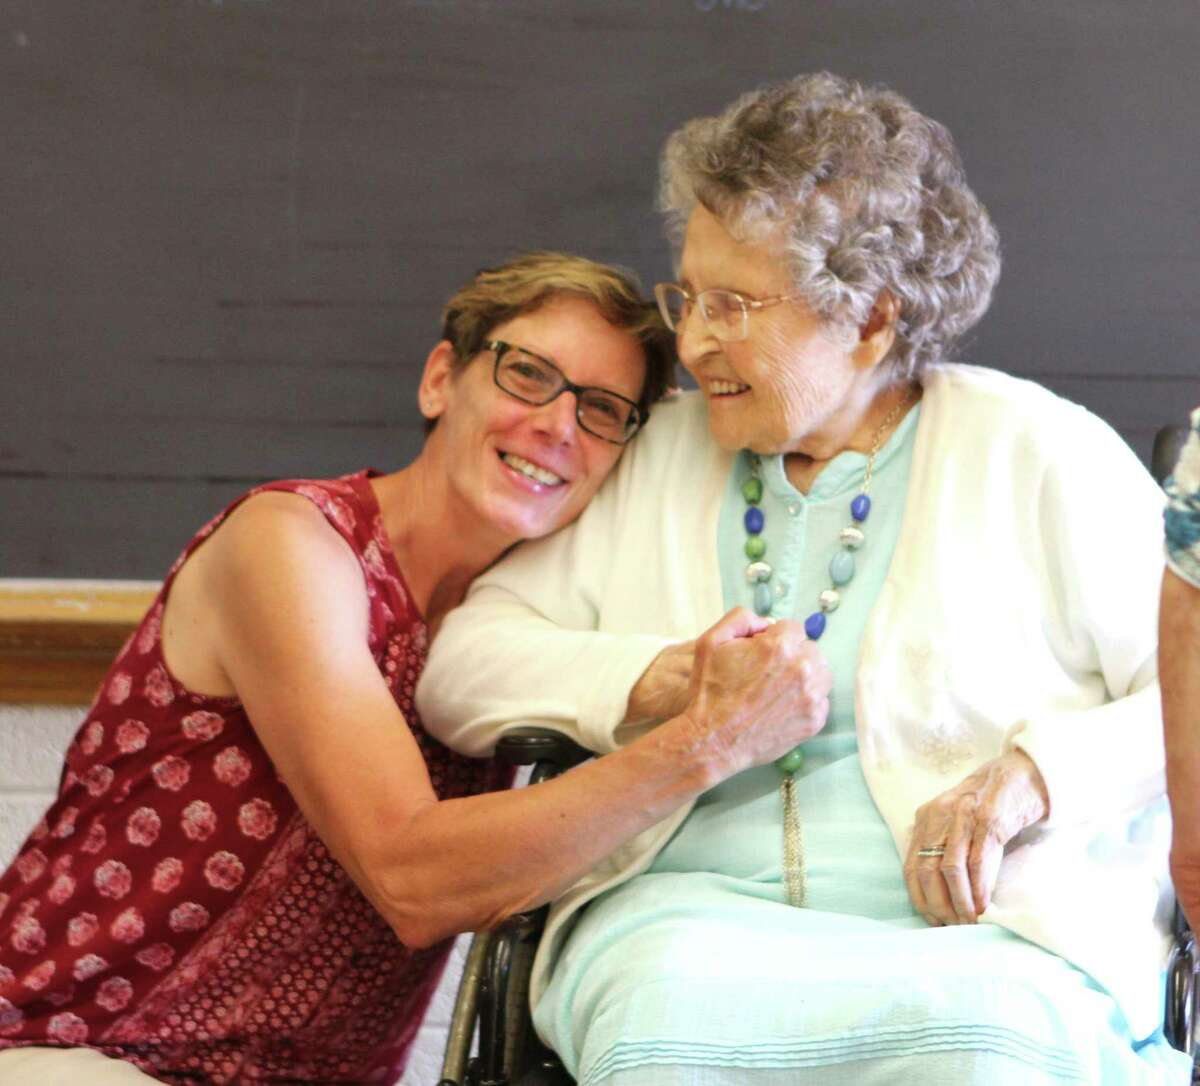 At 101 years young, Doris Drake (right) receives a memorable hug from one of her former students. Drake was once a teacher at Barryton Elementary School and attended the final walkthrough of the building on June 5. (Pioneer photo/Gena Harris)